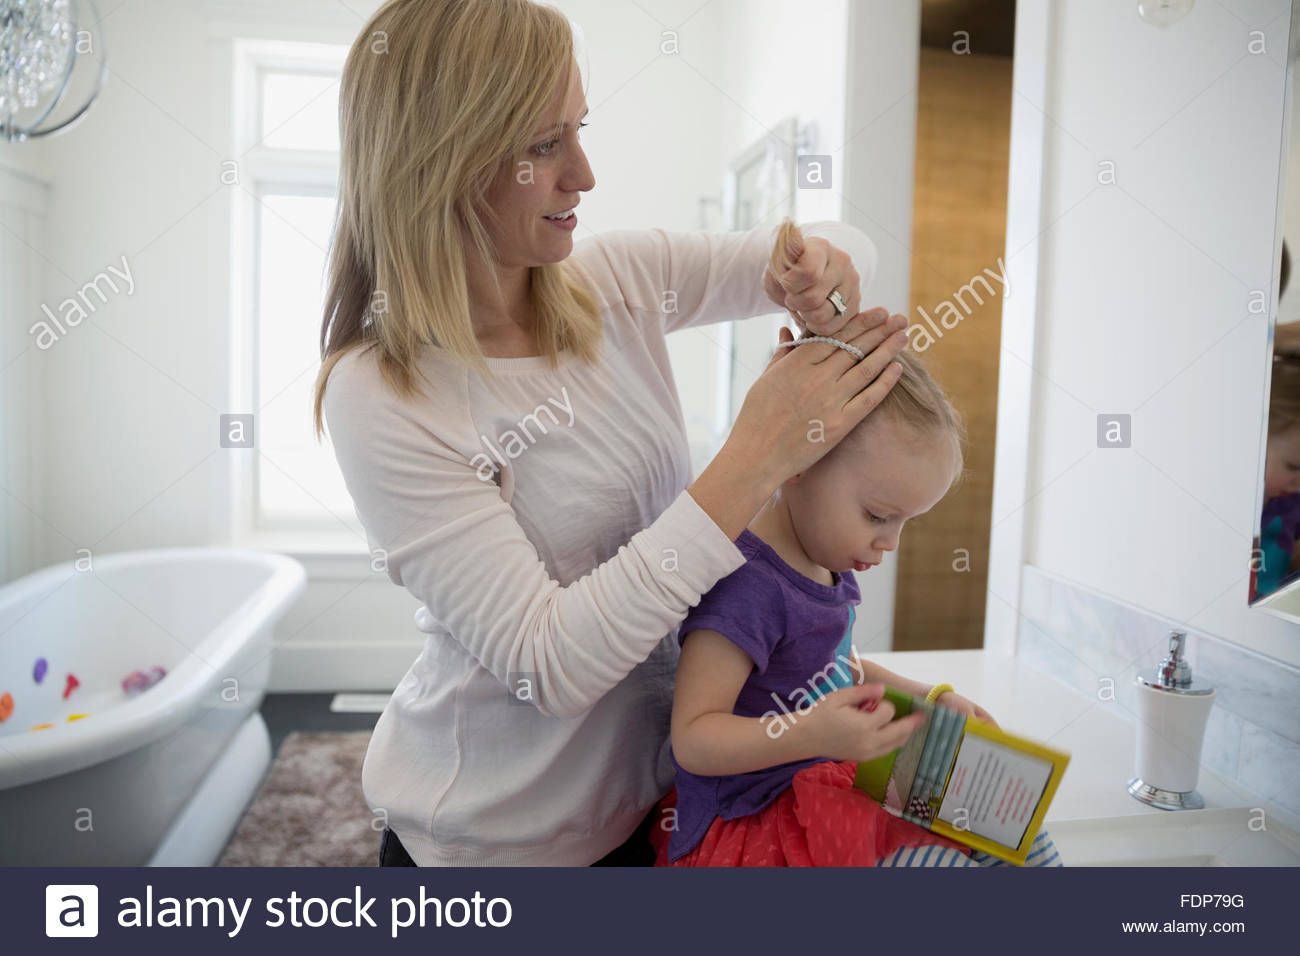 mother fixing daughters hair in bathroom - Stock Image